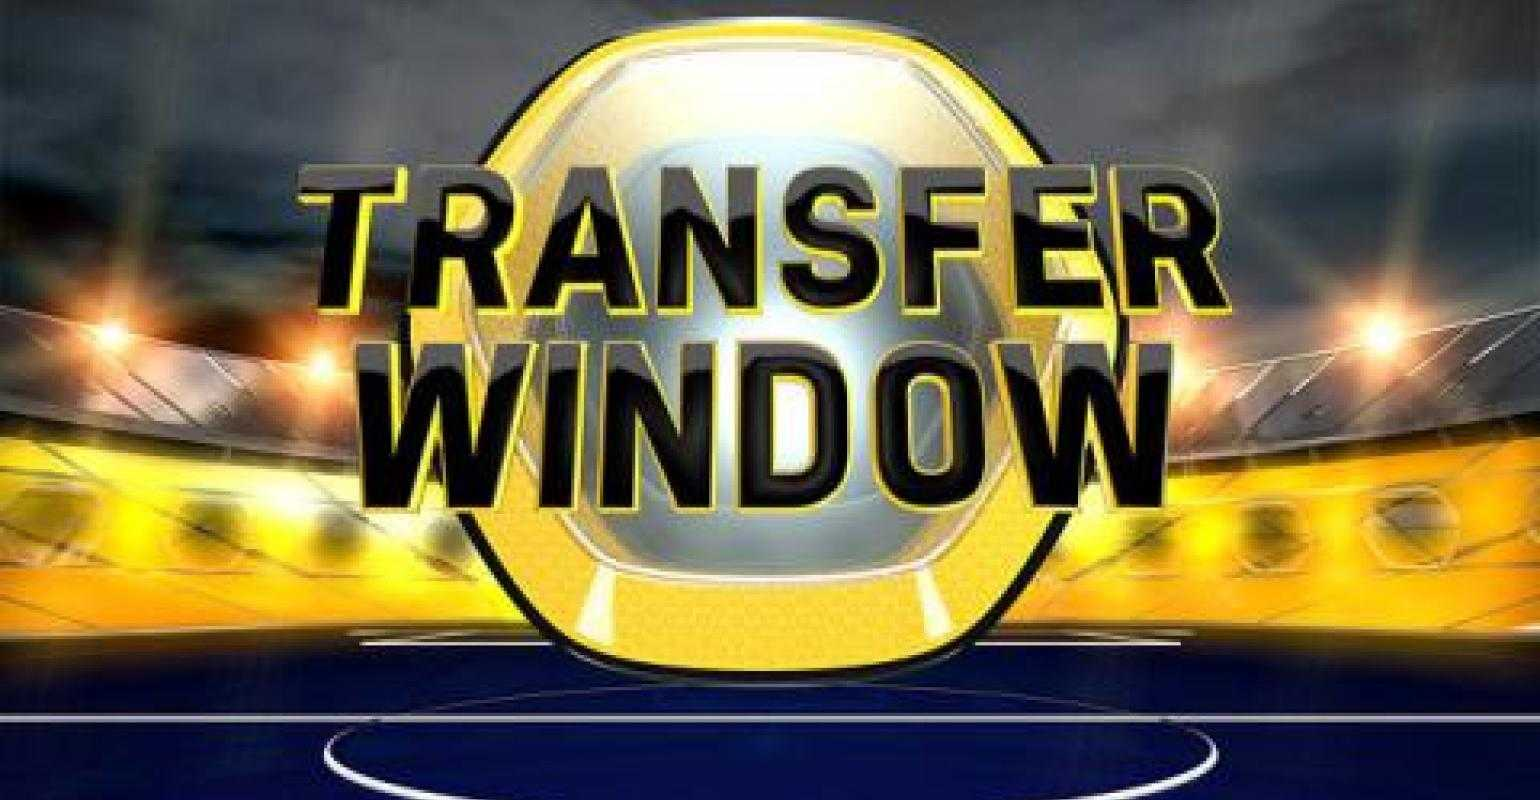 Attention! Transfer window climax tonight